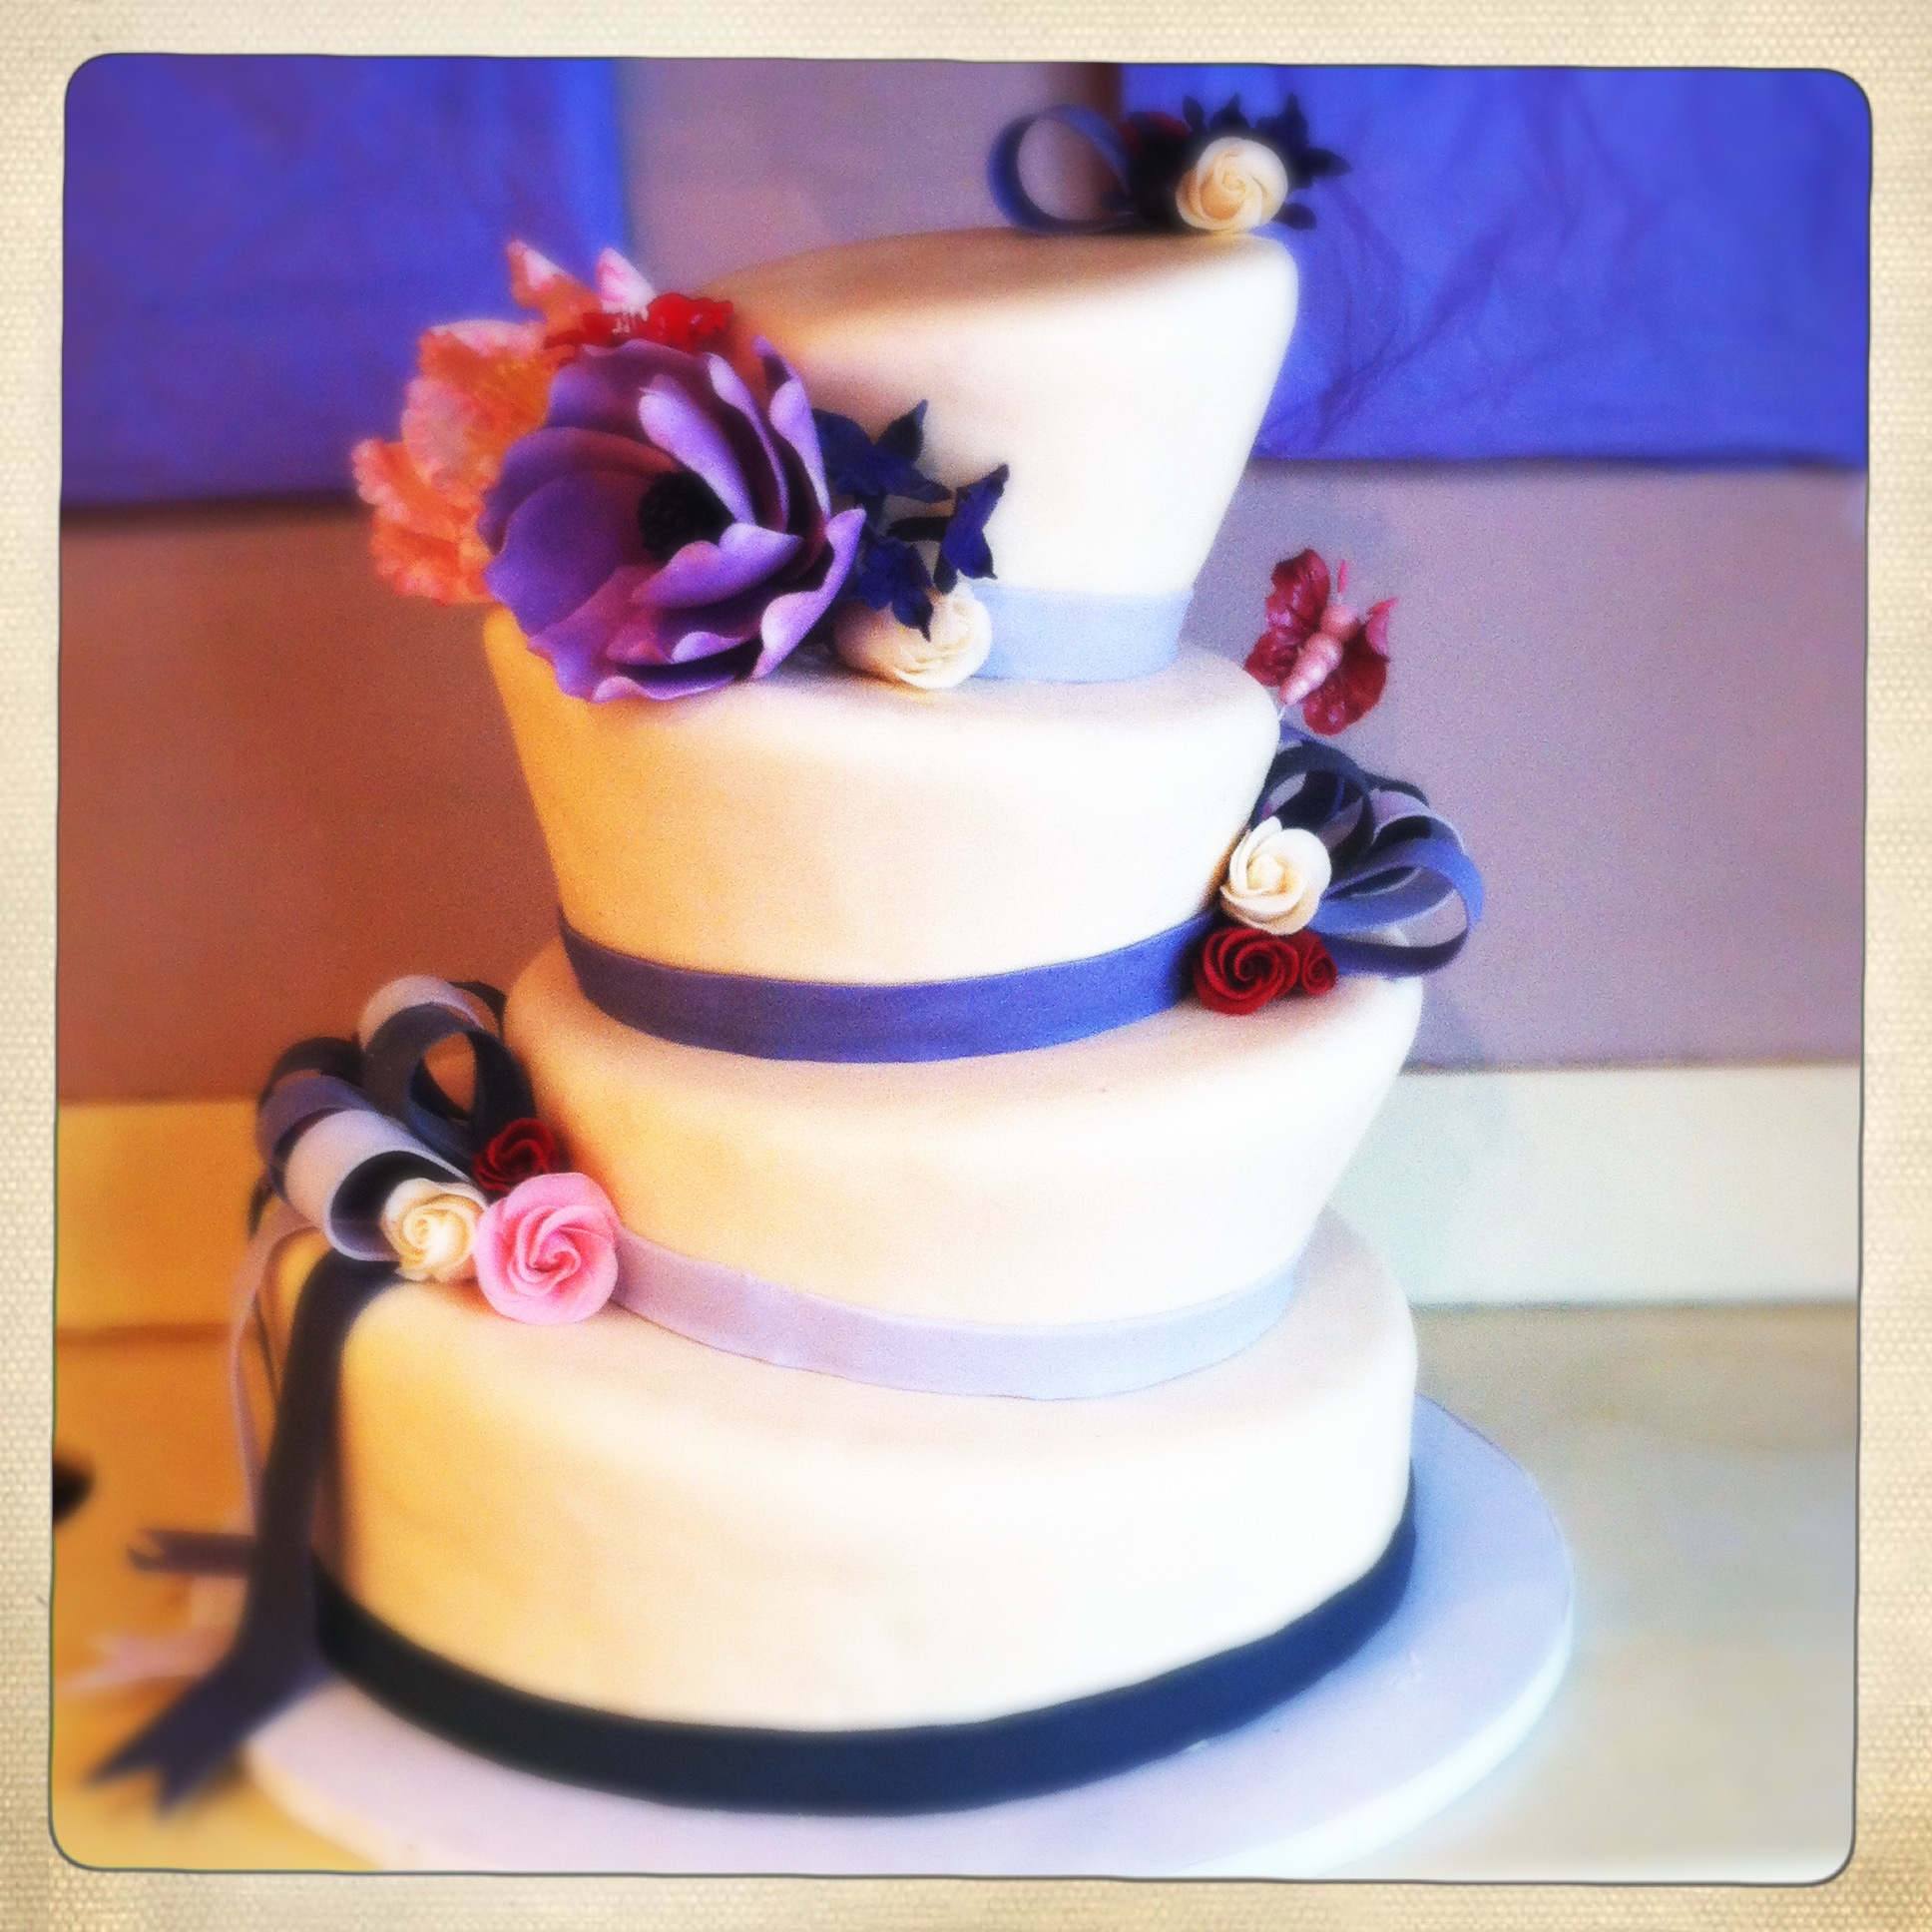 http://tiffanymacisaacdotcom.files.wordpress.com/2012/06/topsy-turvy-wedding-cake2.jpg